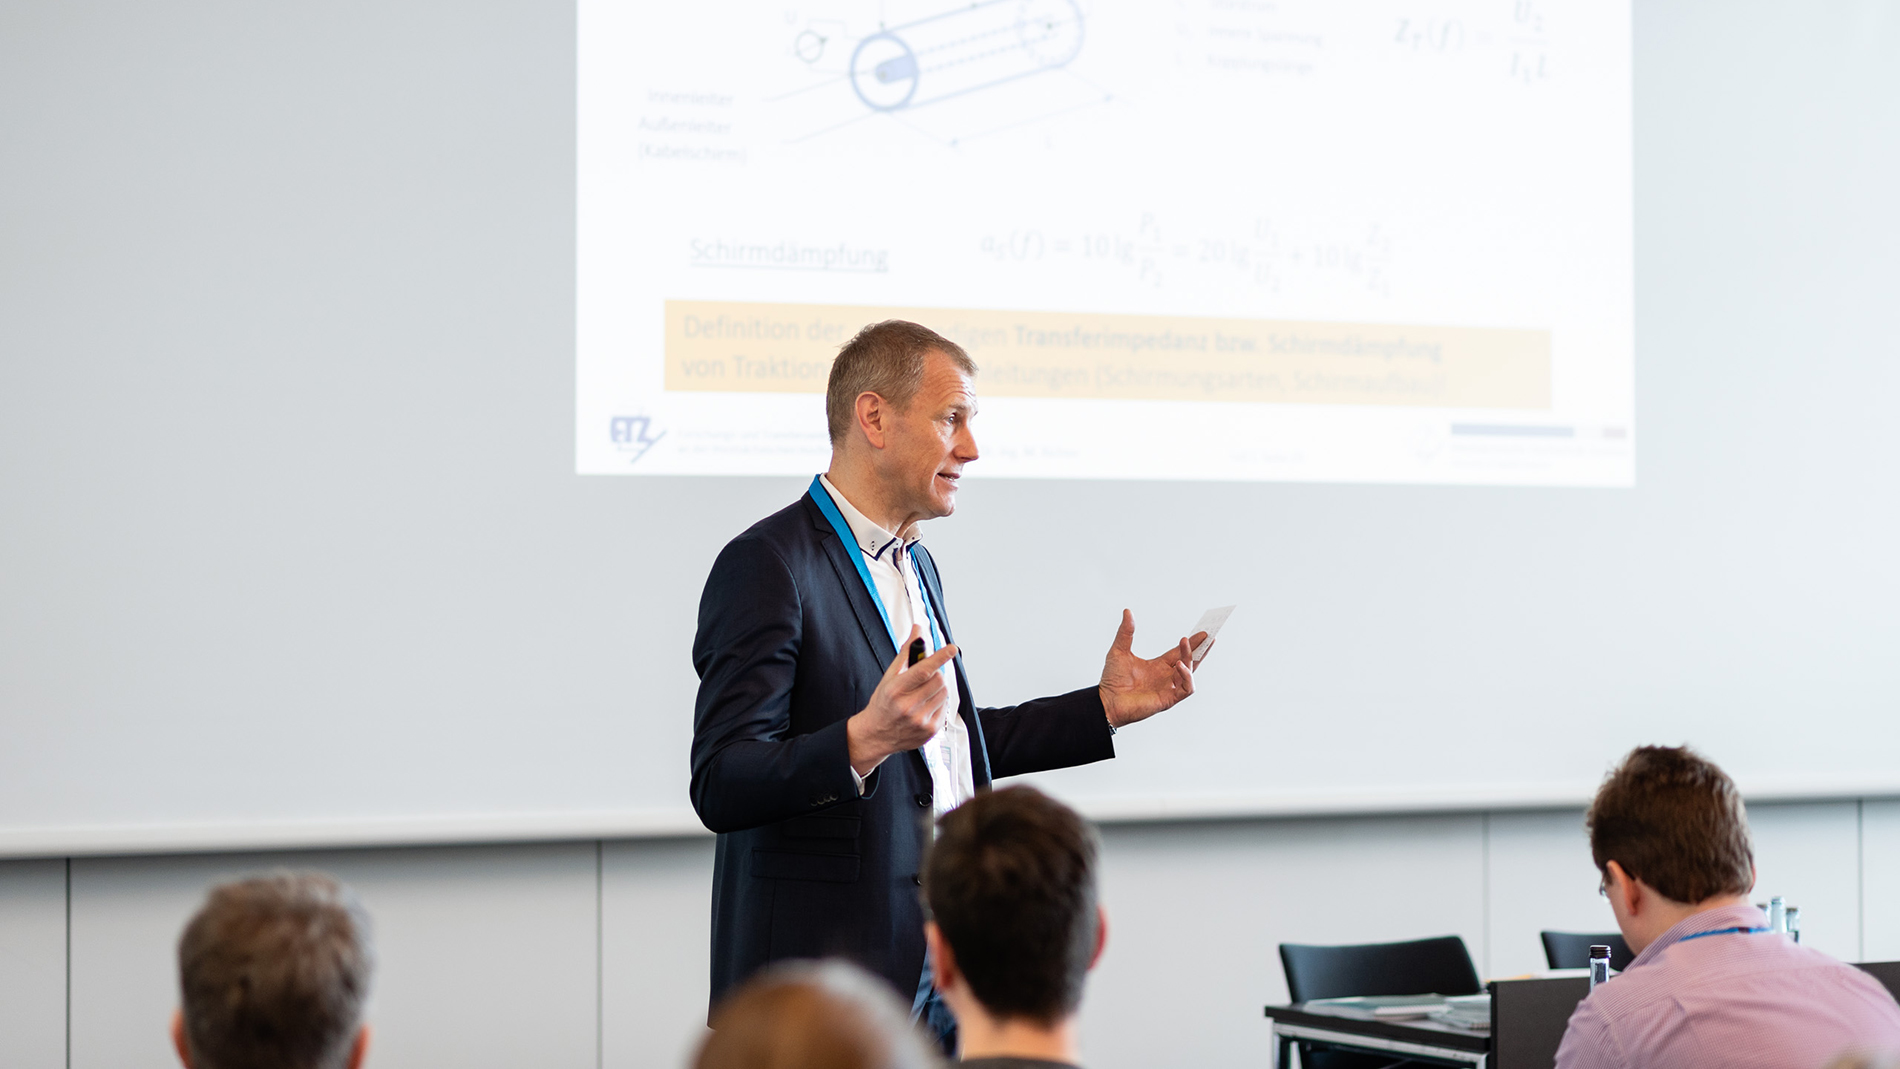 Matthias Richter, University of Applied Sciences Zwickau, on EMC of high-voltage systems in electric vehicles